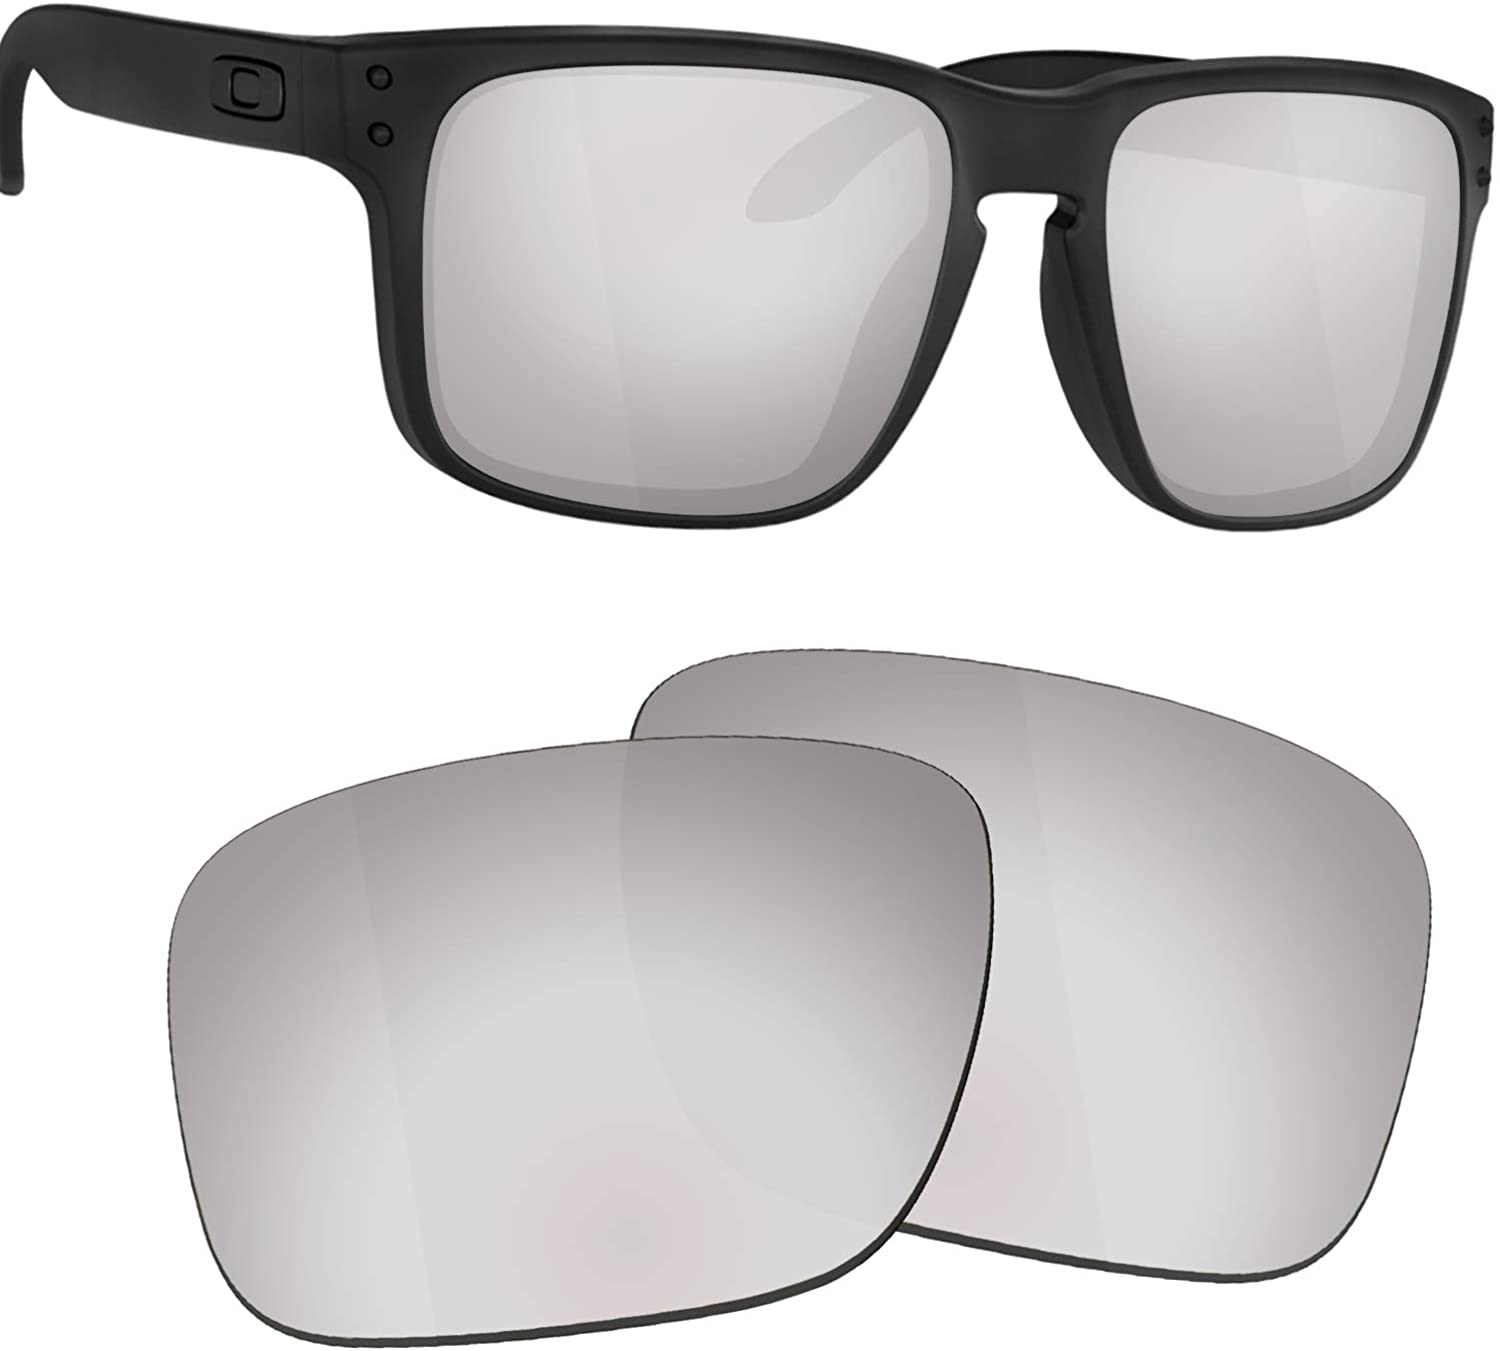 Guarda TRUE POLARIZED Replacement Lenses for Oakley Holbrook XL OO9417 Sunglasses - Titanium Mirrored